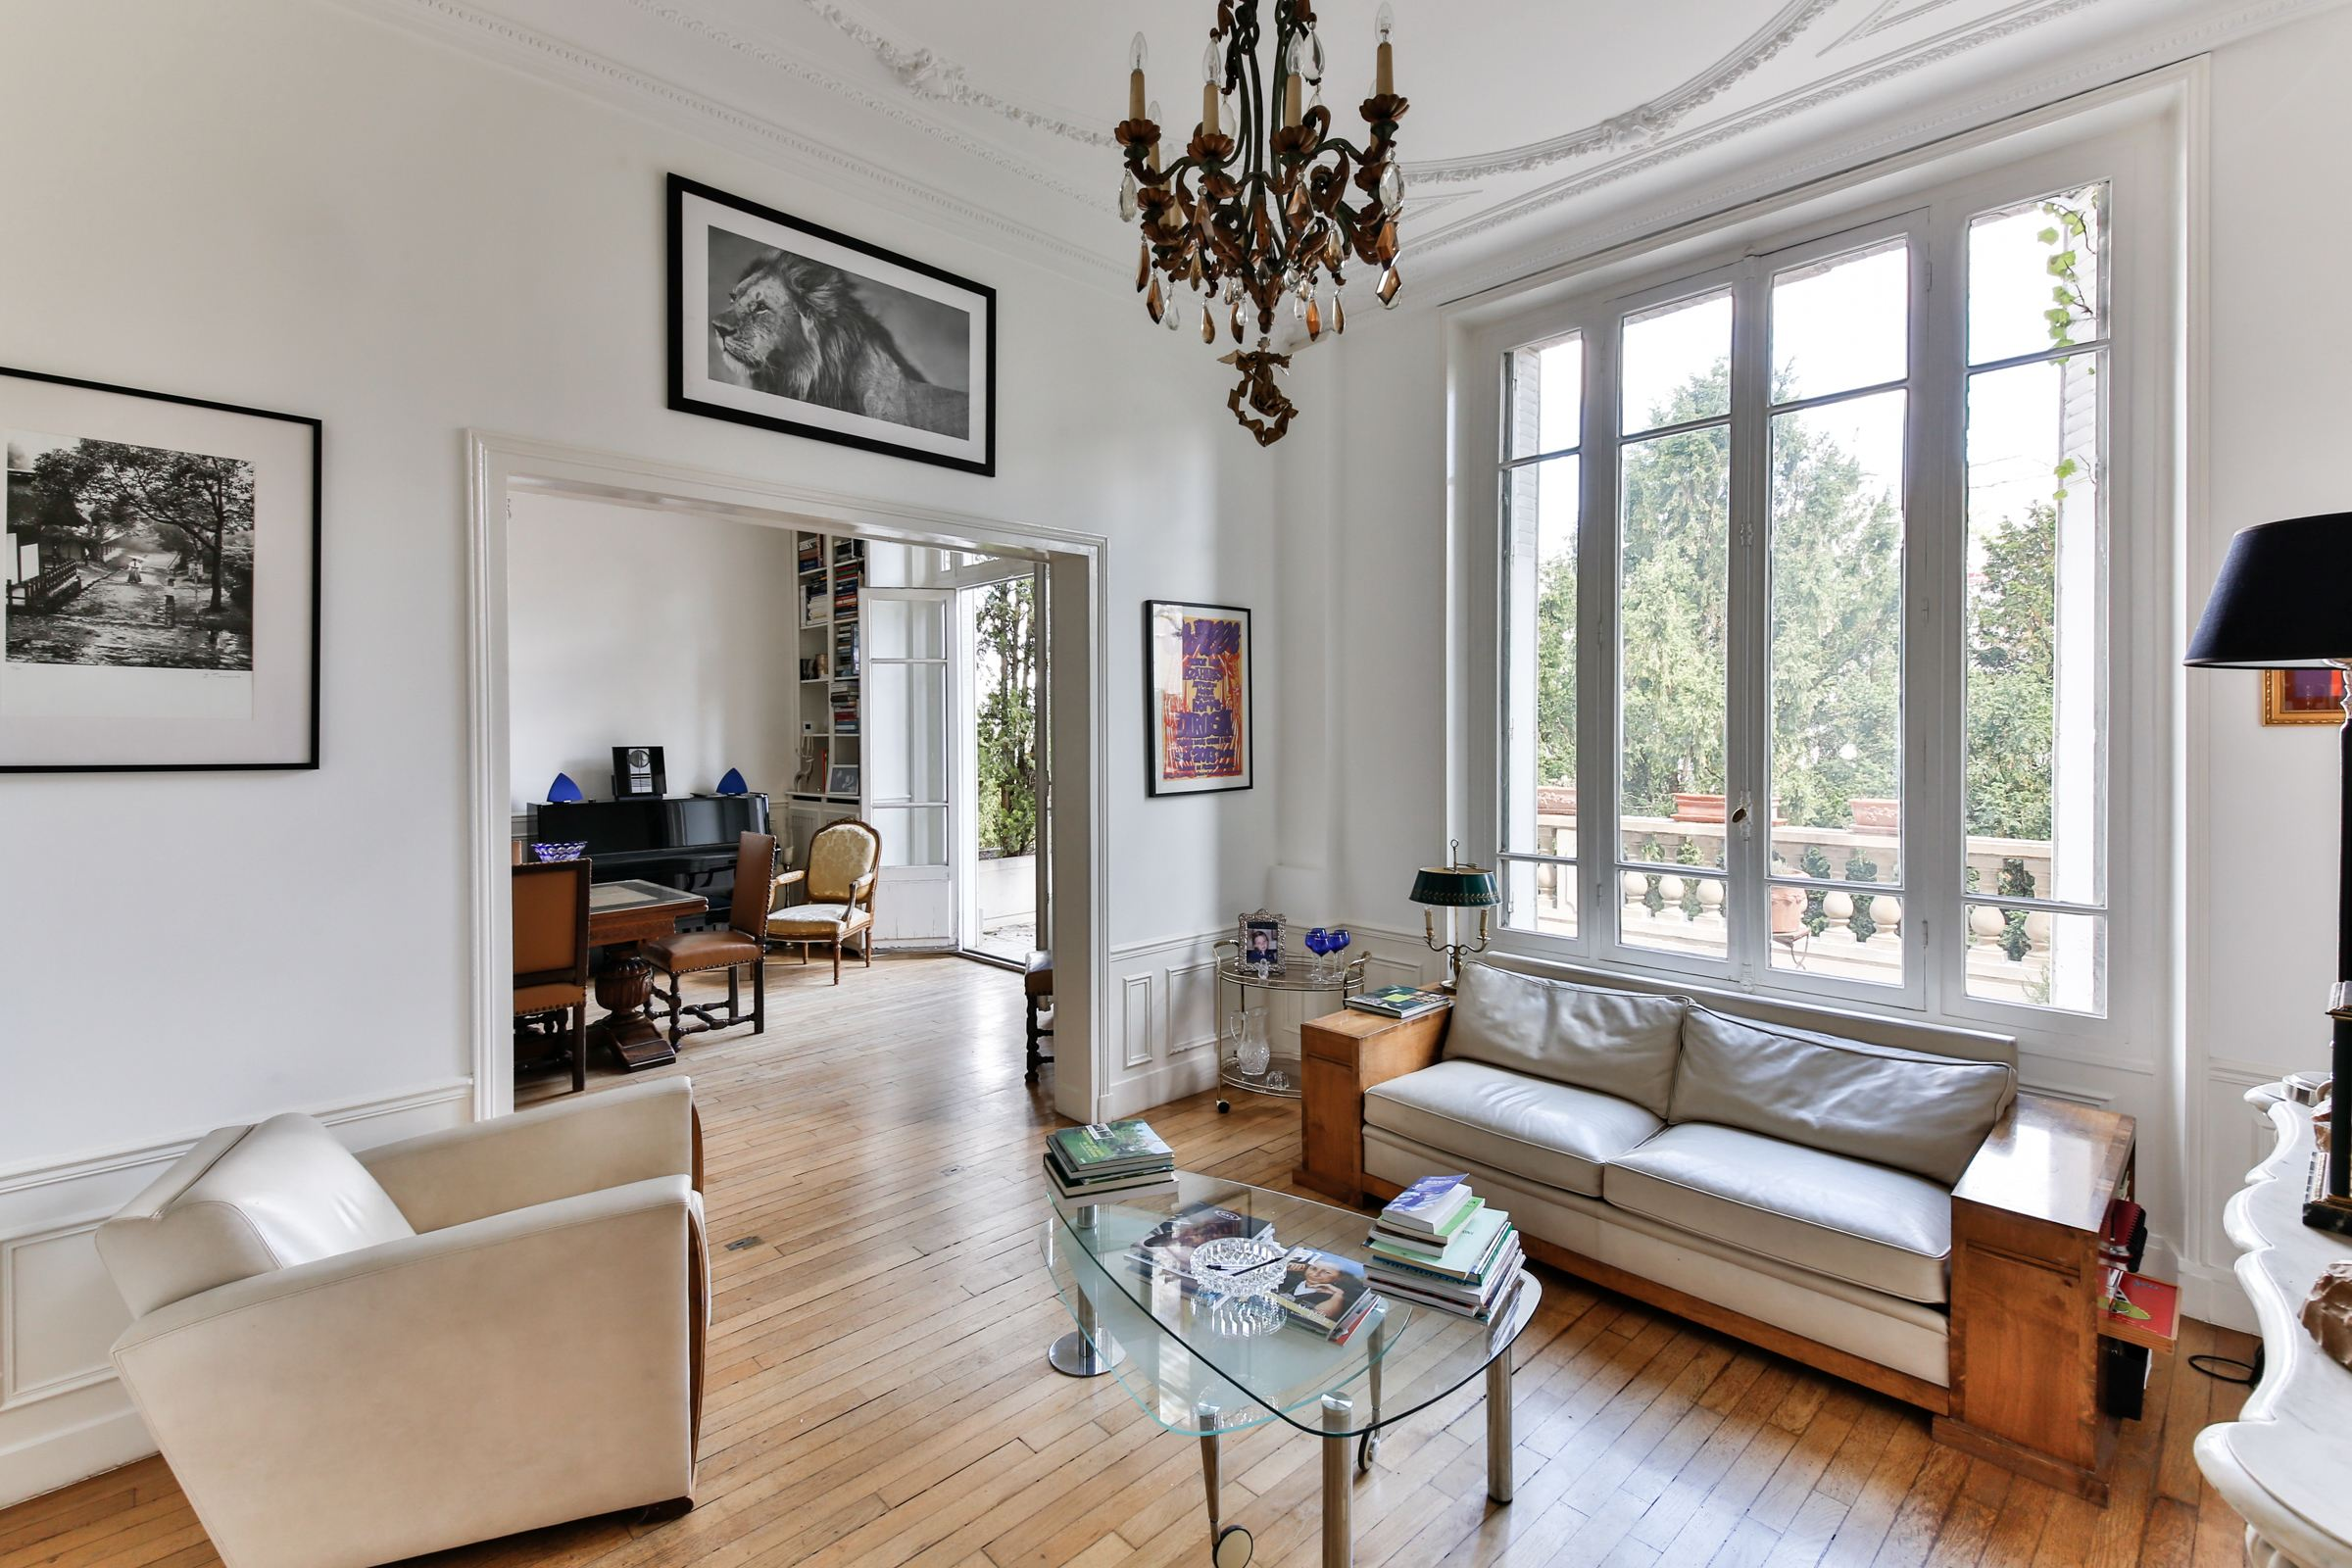 Property For Sale at Suresnes. Hippodrome. House. South-East exposure